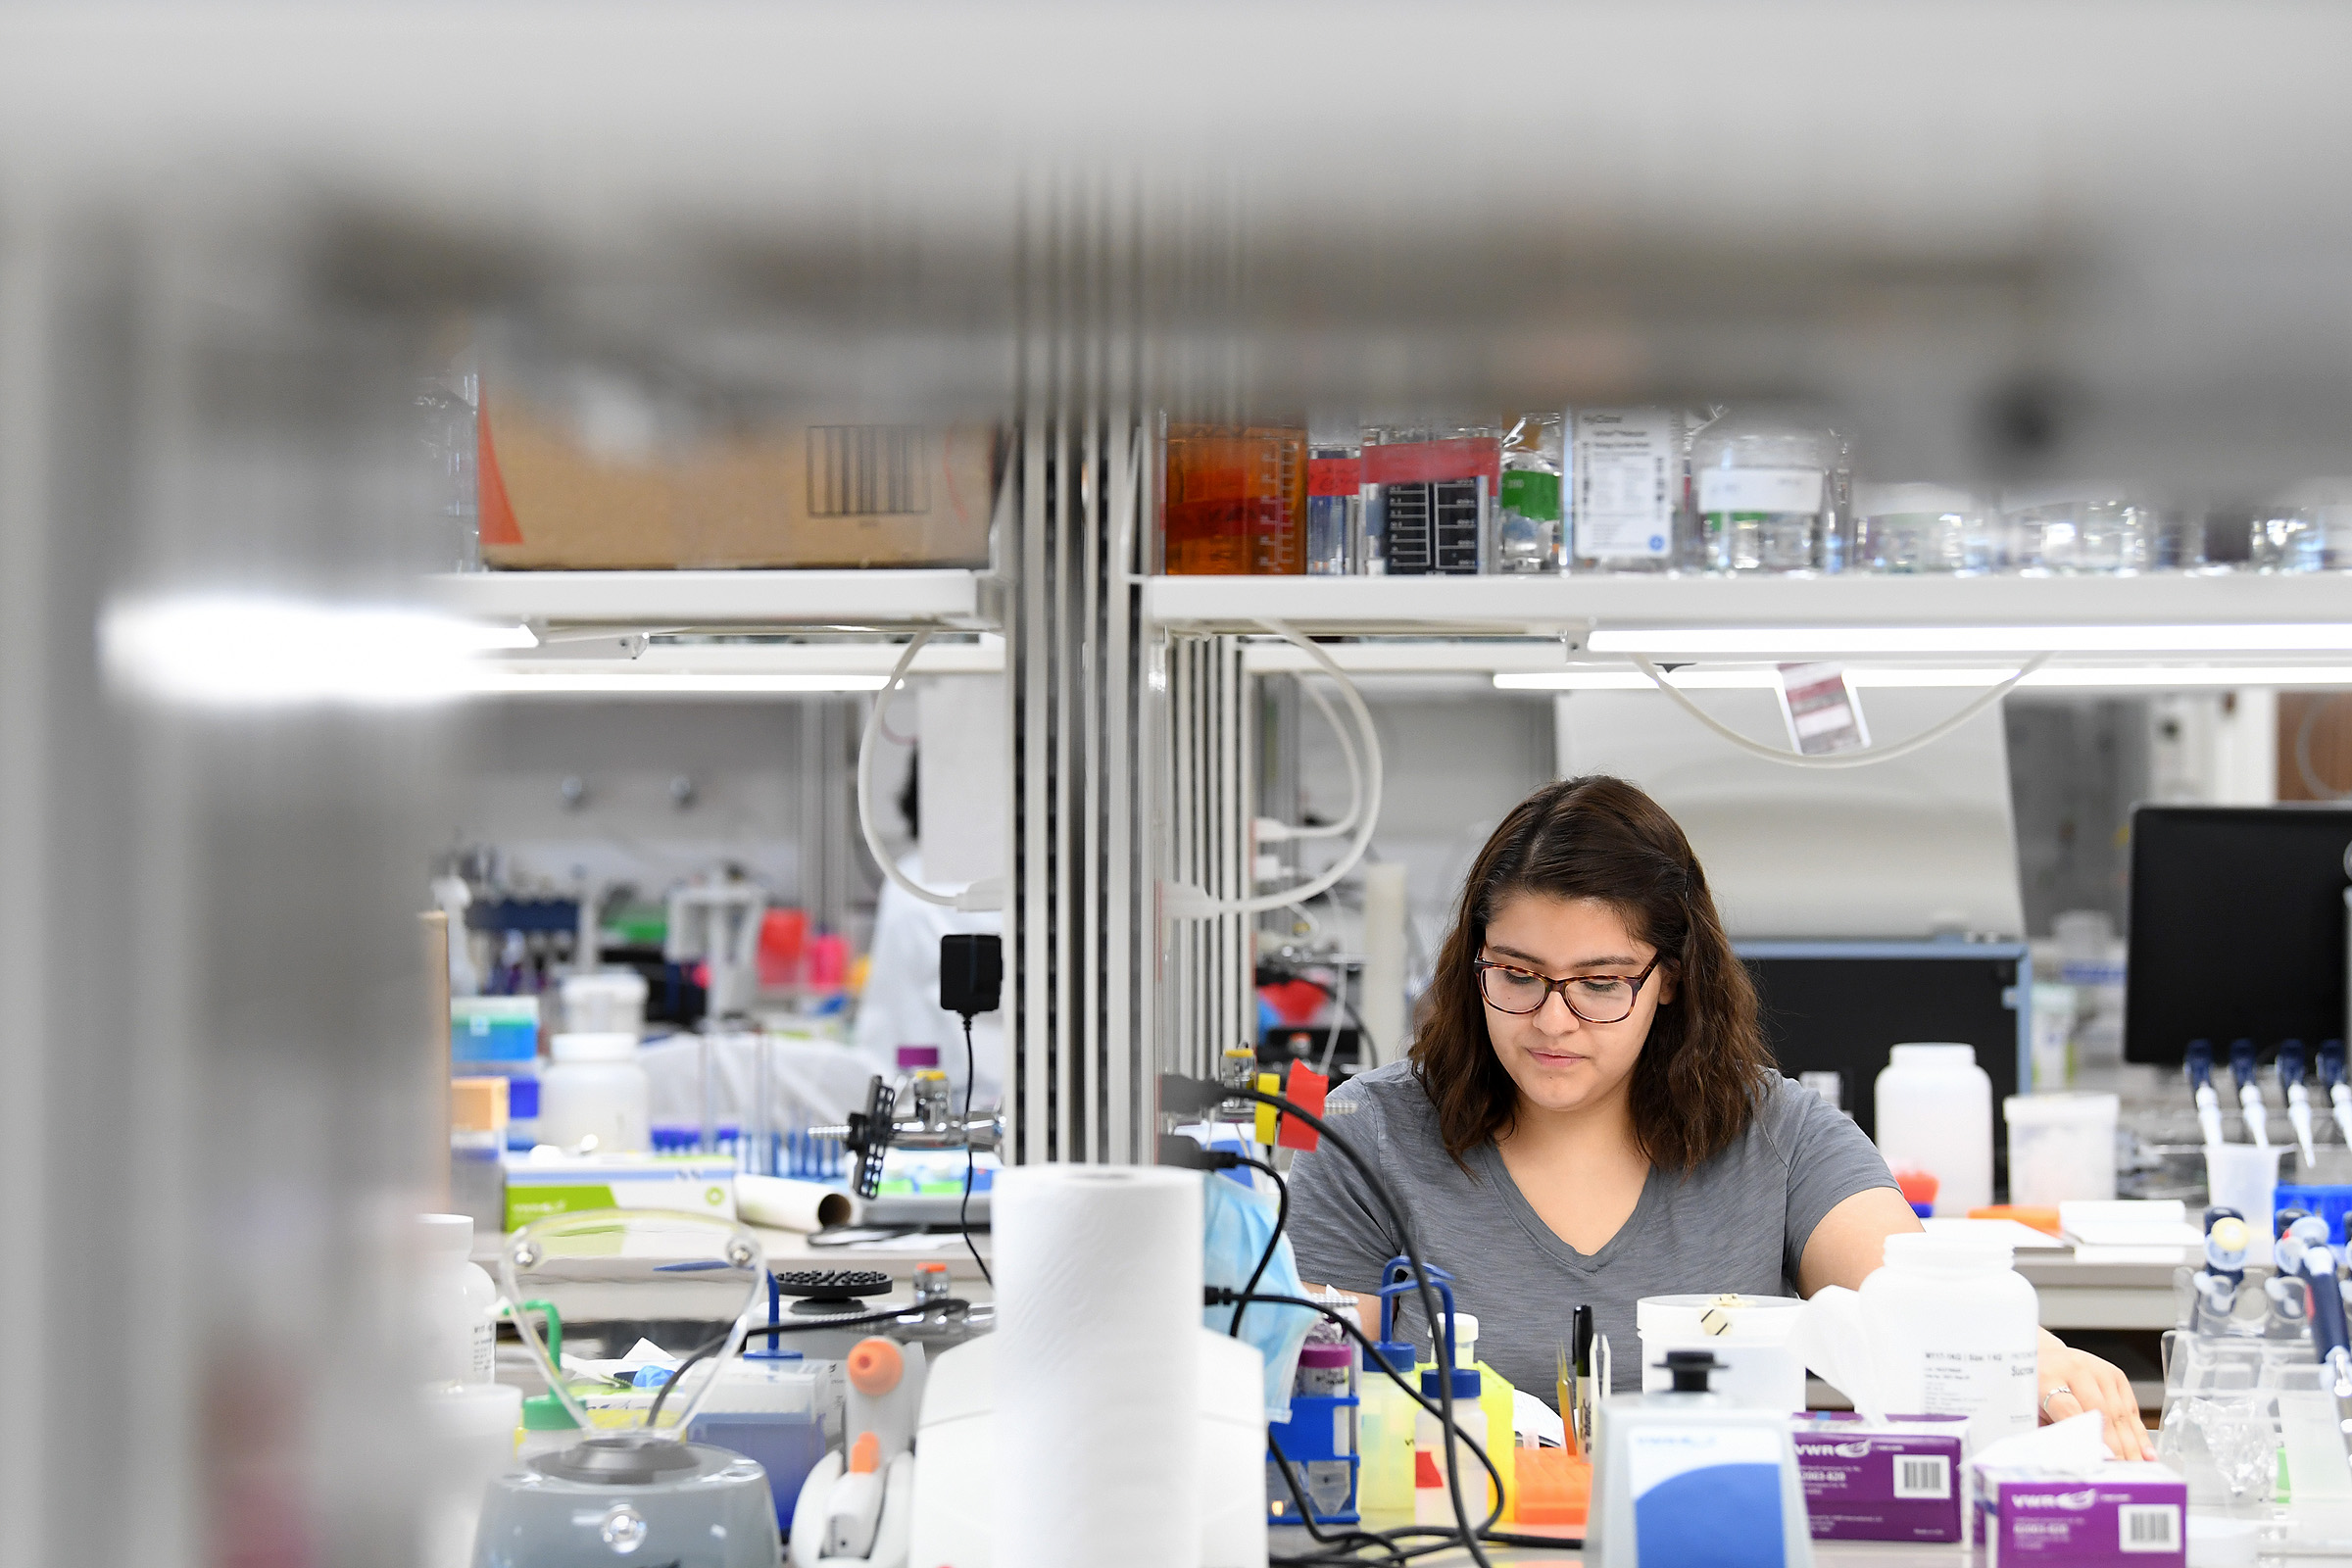 Cindy Mora, a student attending a summer research program at Texas A&M, works Tuesday, June 25, 2019 in a lab at the Medical Research and Education Building II at the Texas A&M University Health Science Center in Bryan, Texas. (Laura McKenzie/The Eagle)